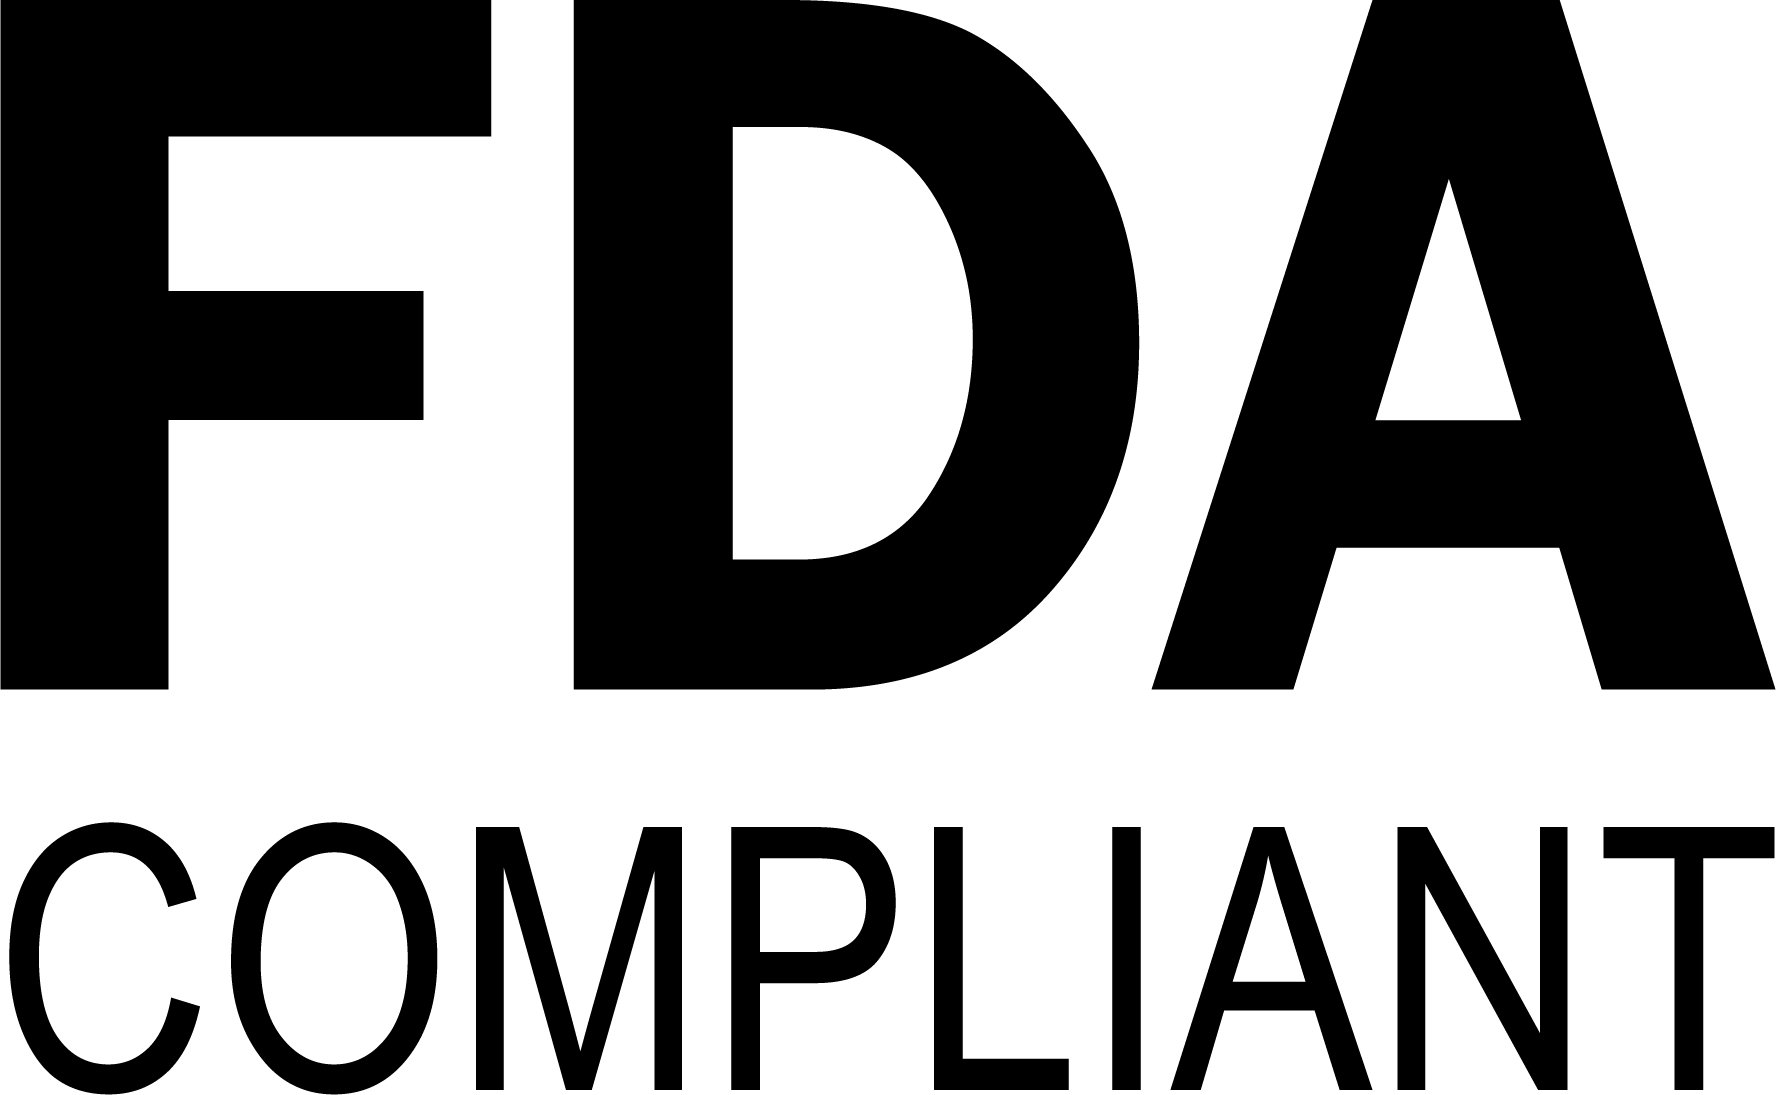 FDACompliantLogo_black_OL